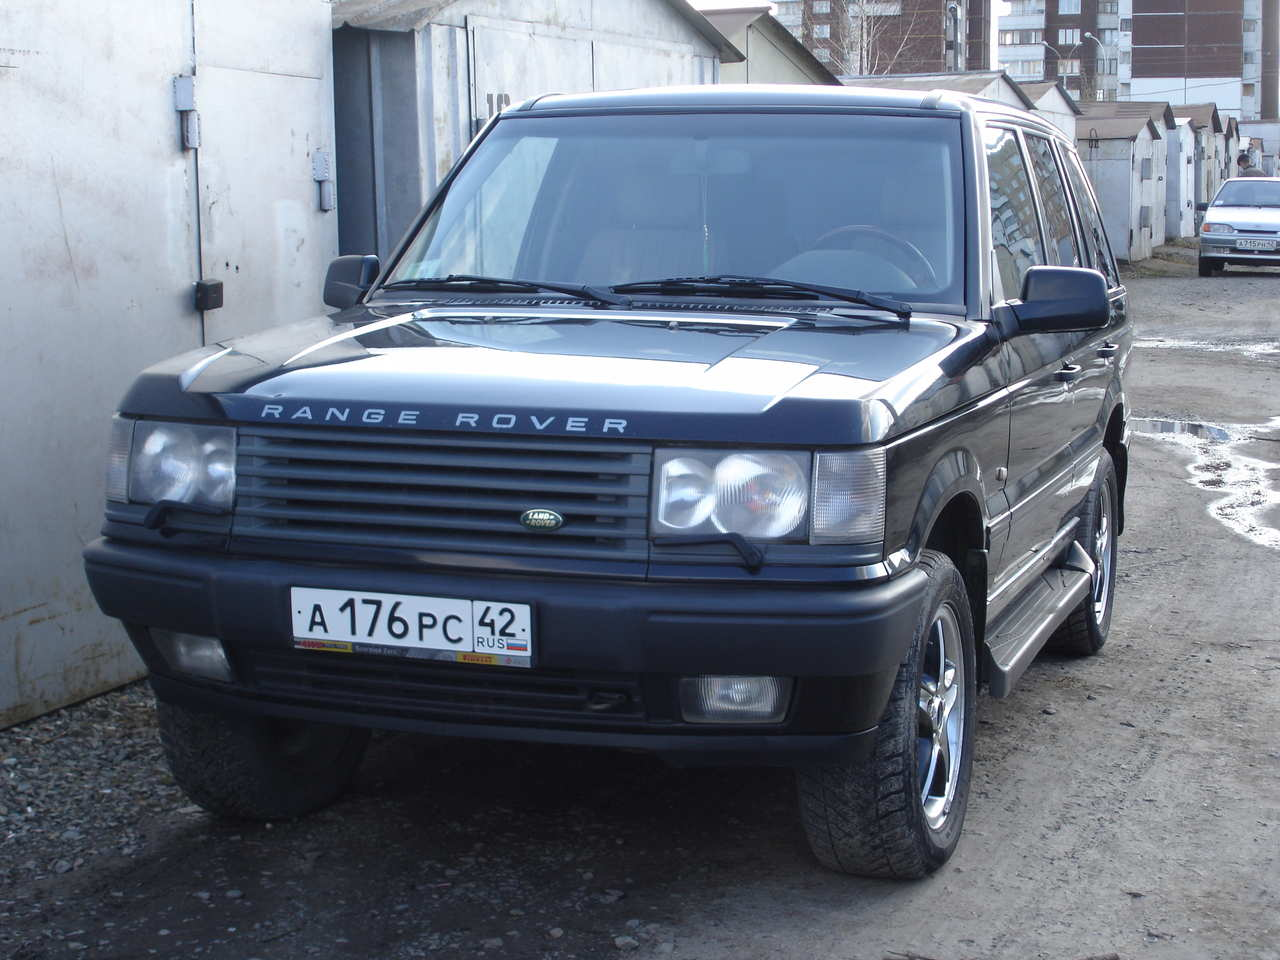 2000 land rover range rover photos 4 6 gasoline automatic for sale. Black Bedroom Furniture Sets. Home Design Ideas